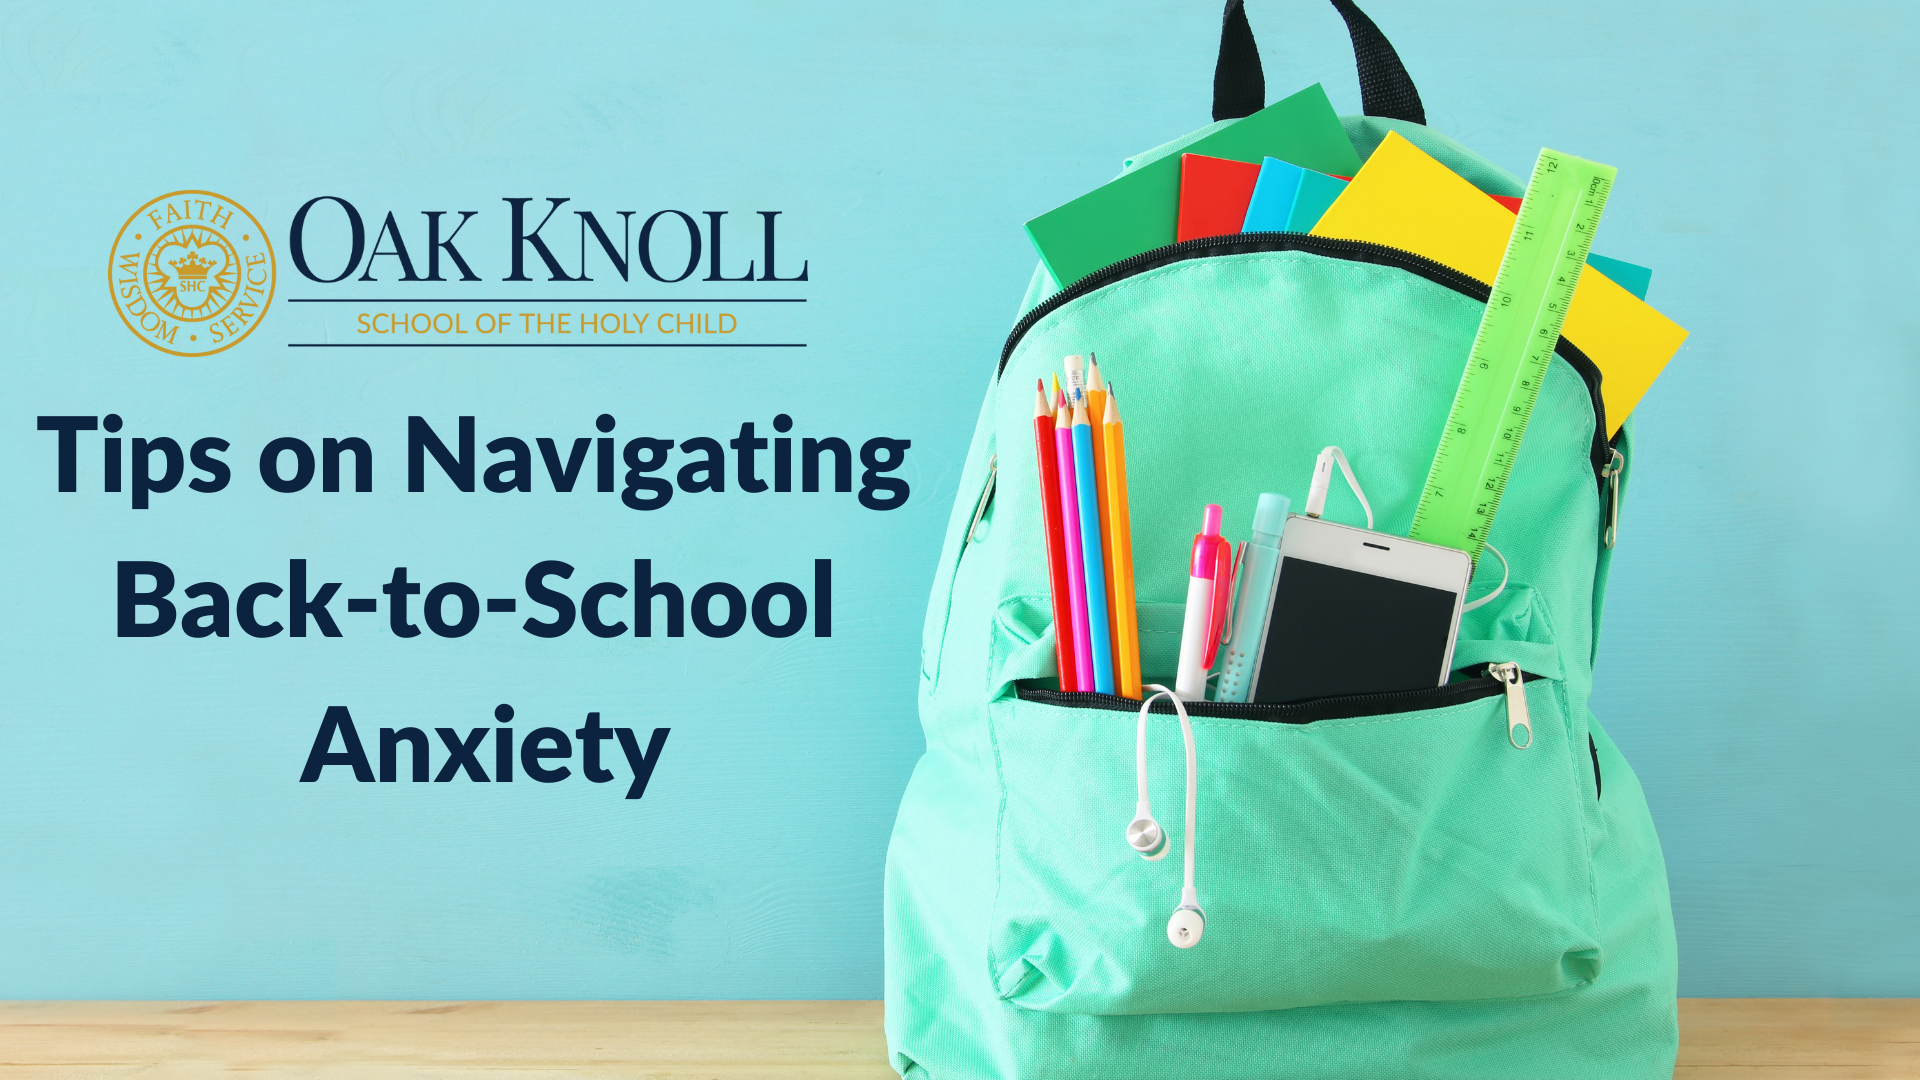 Tips on Navigating Back-to-School Anxiety